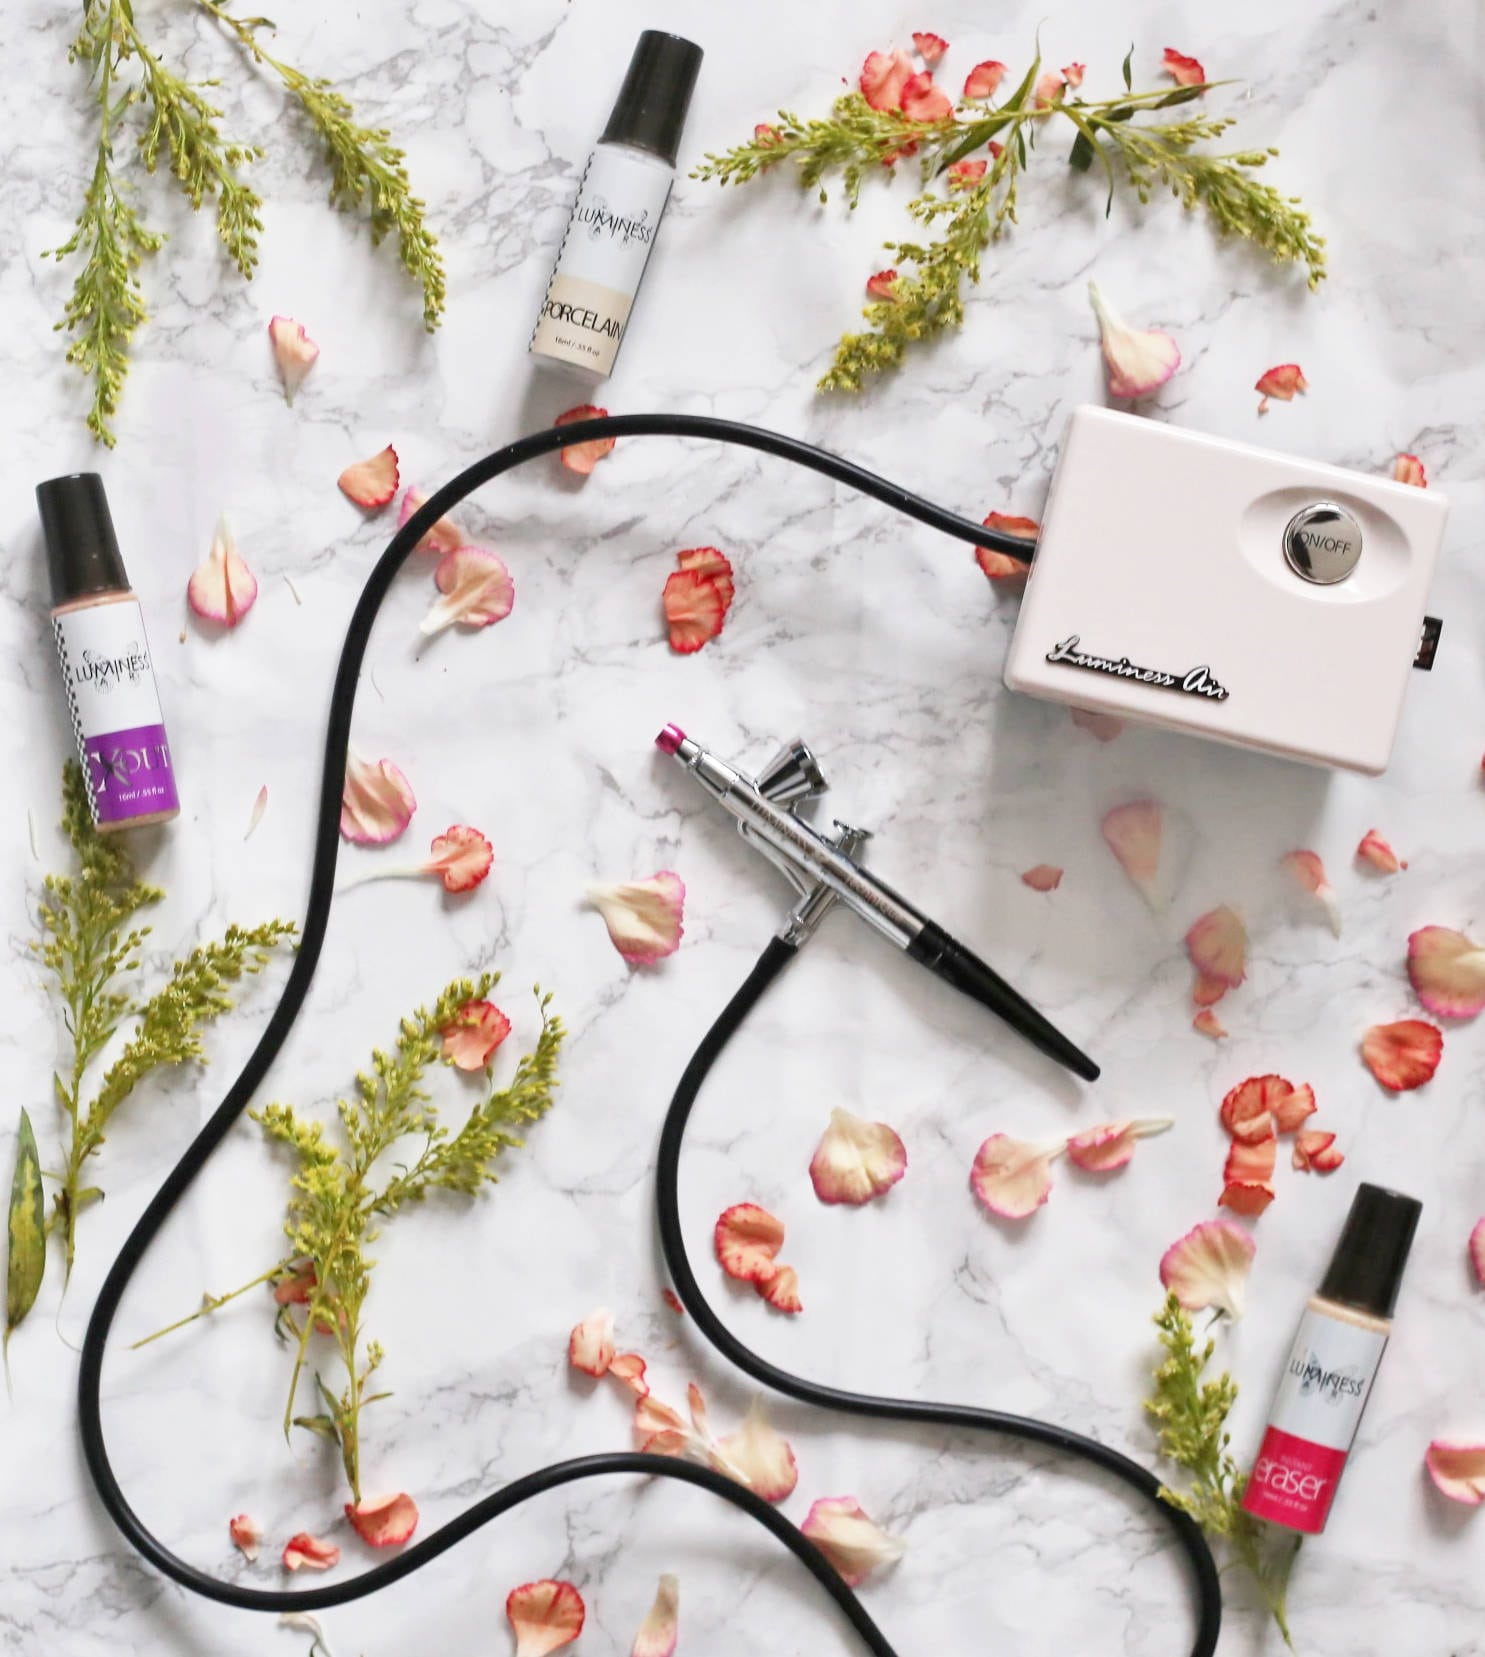 Beauty blogger Mash Elle shares the perfect girl for the beauty lover! Luminess Air is the perfect airbrushing system!